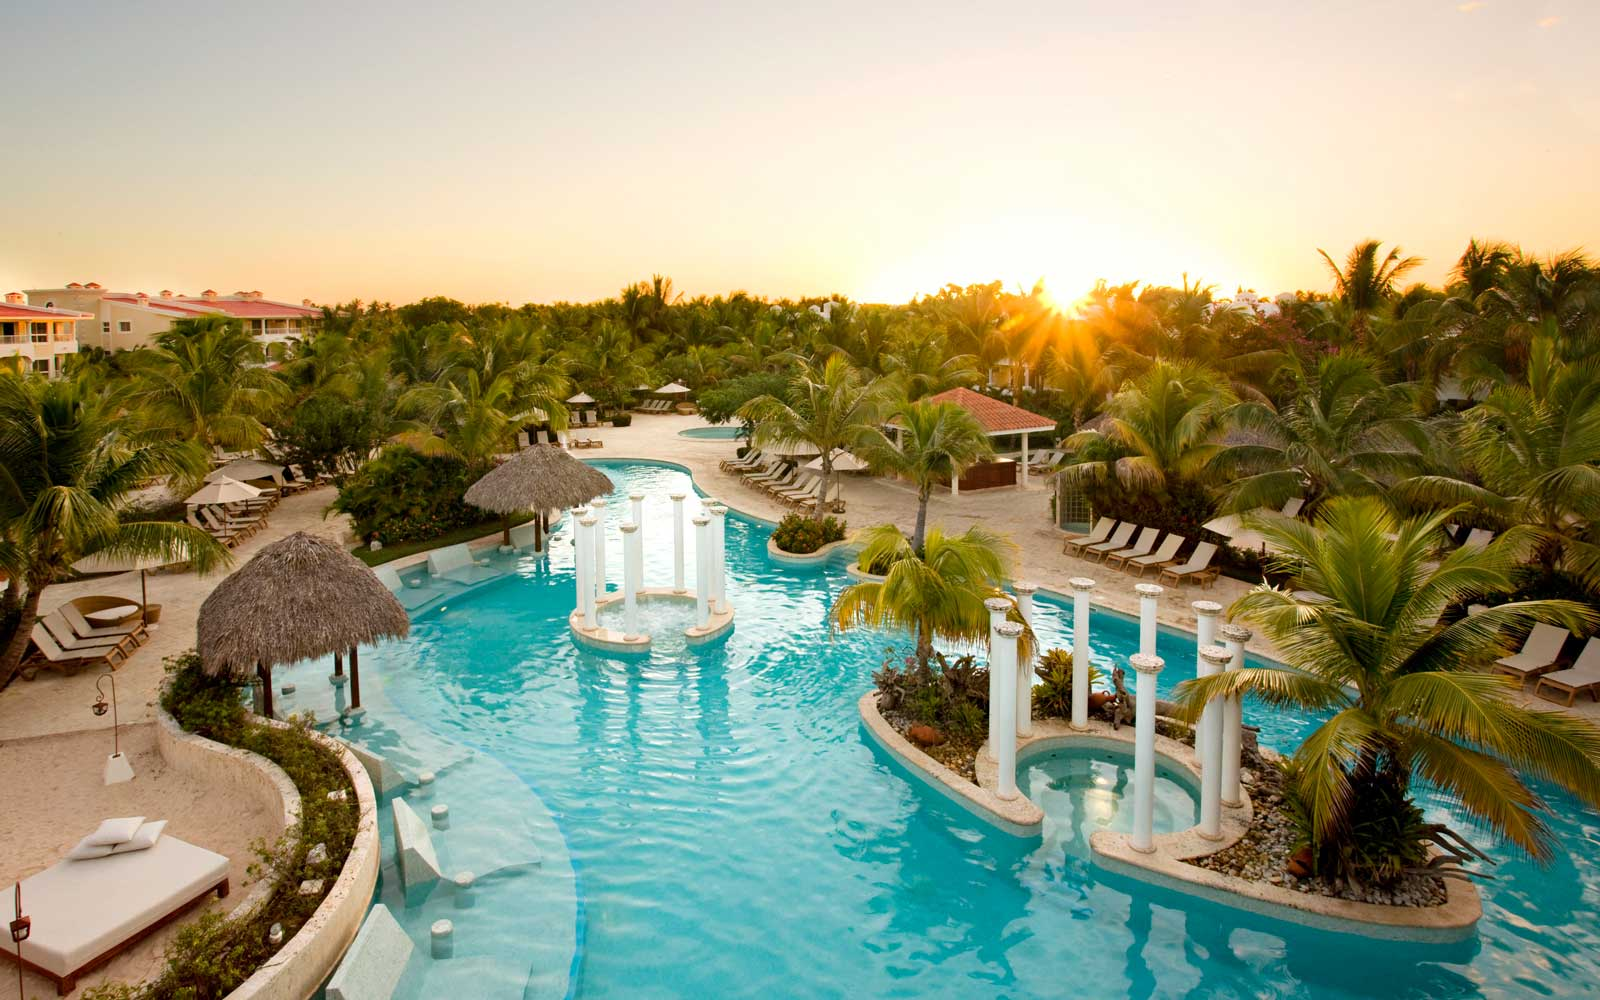 Get 30% off Stays at the Level at Mélia Caribe Tropical in the Dominican Republic